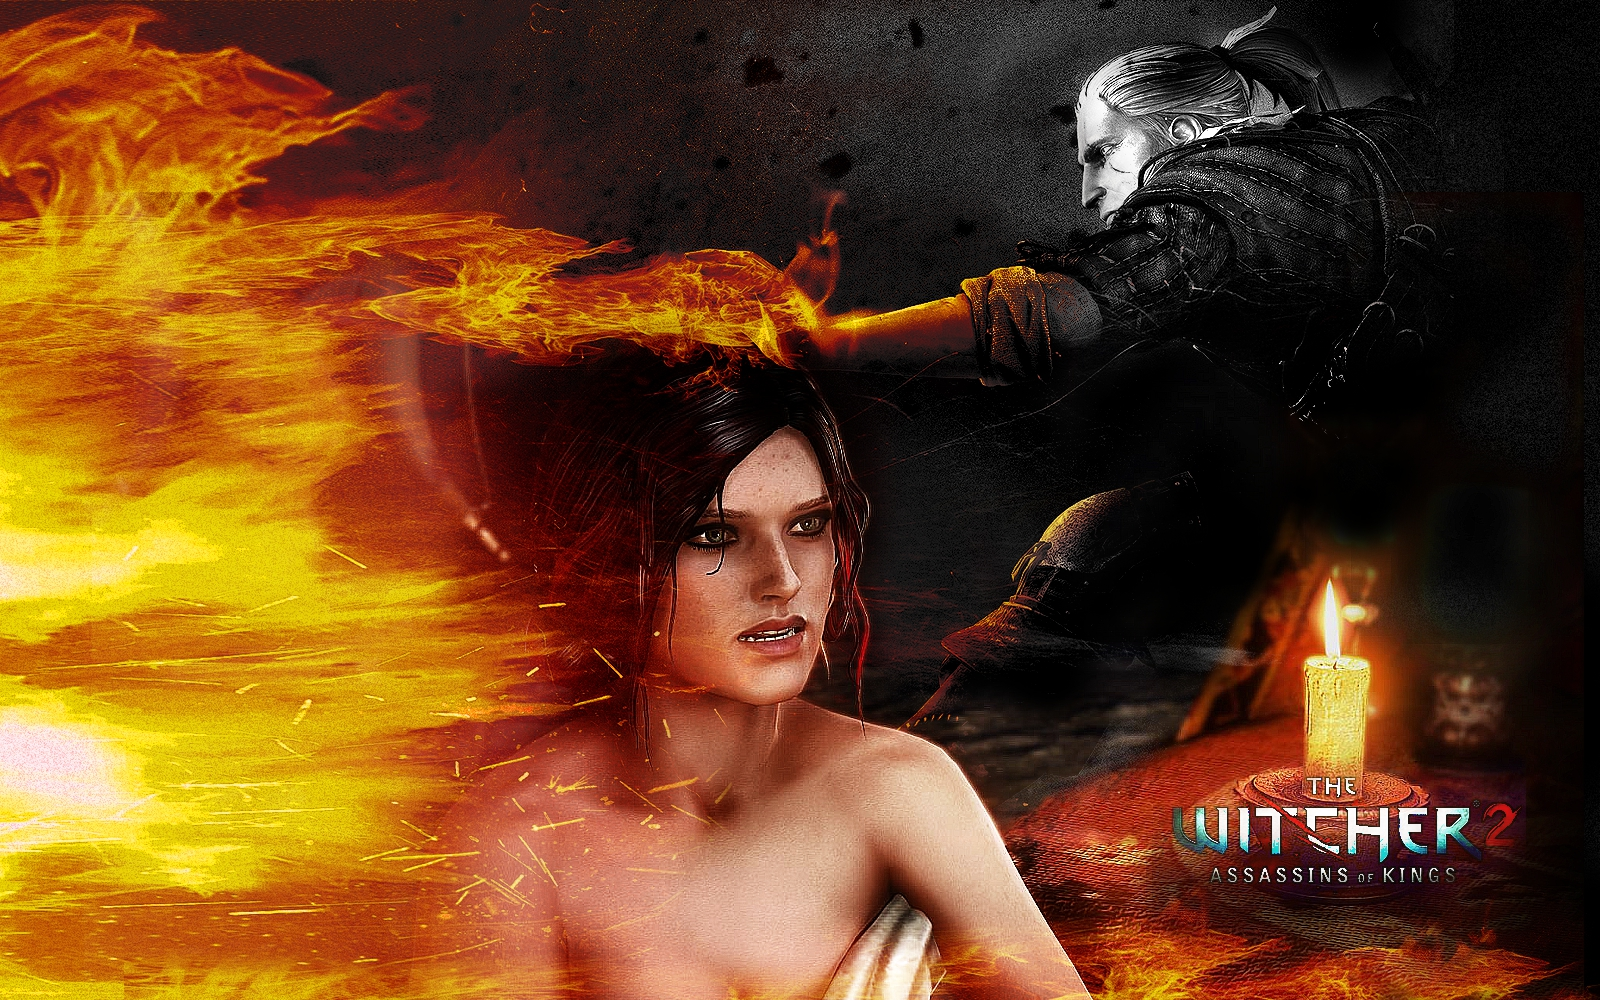 Video Game - The Witcher 2: Assassins Of Kings Wallpaper